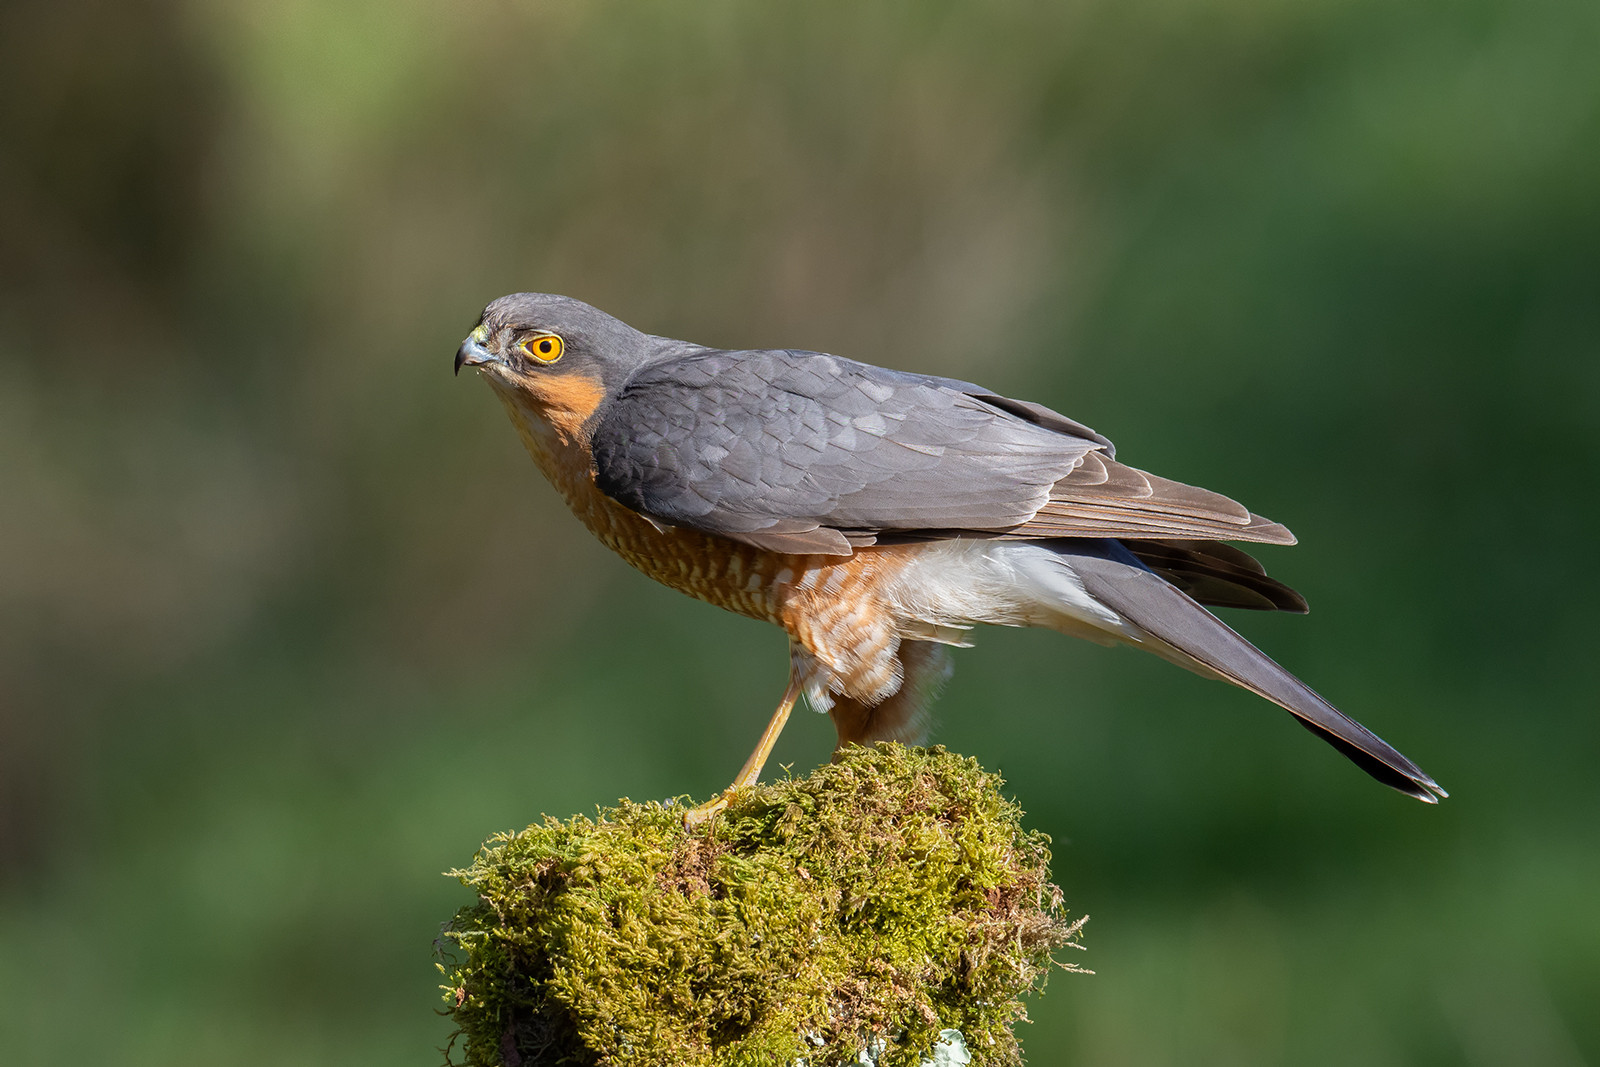 PDI - Male Sparrowhawk by Ted McKee (13 marks)